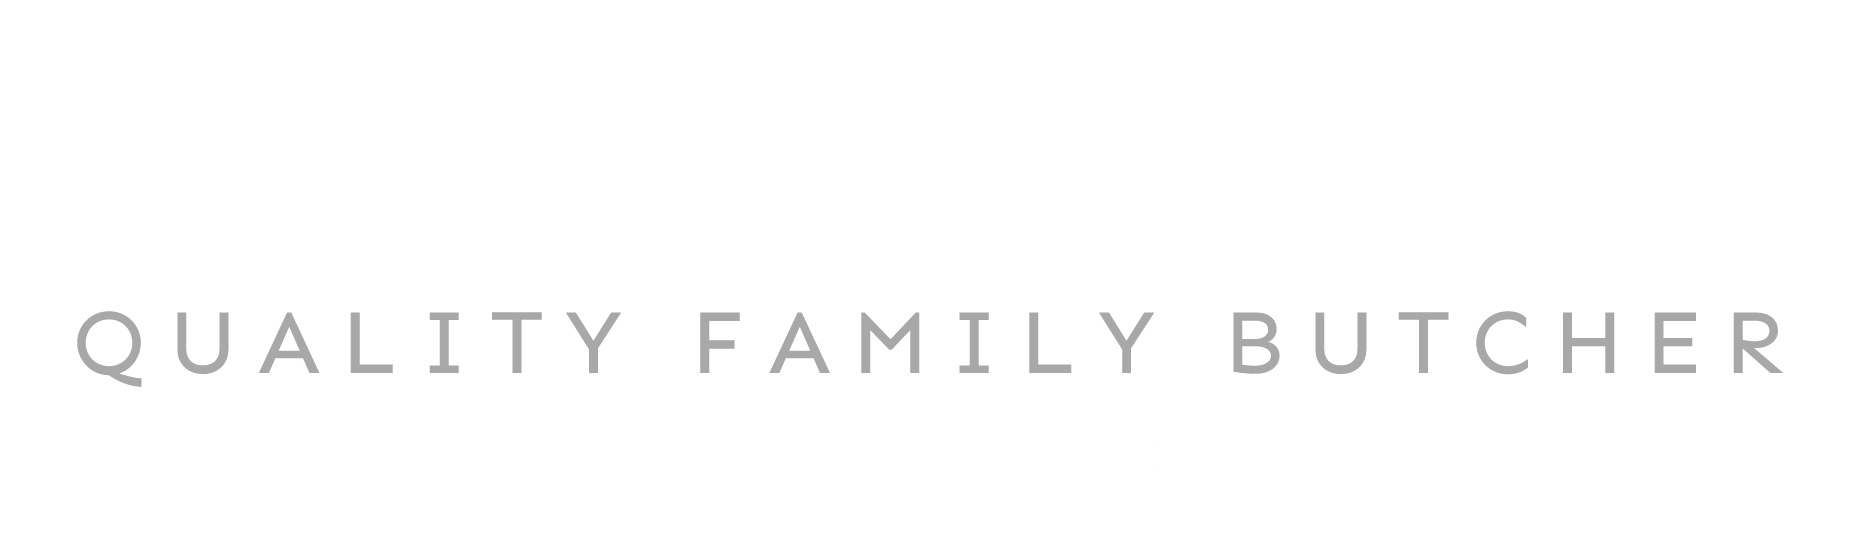 Saunderson's Quality Family Butcher